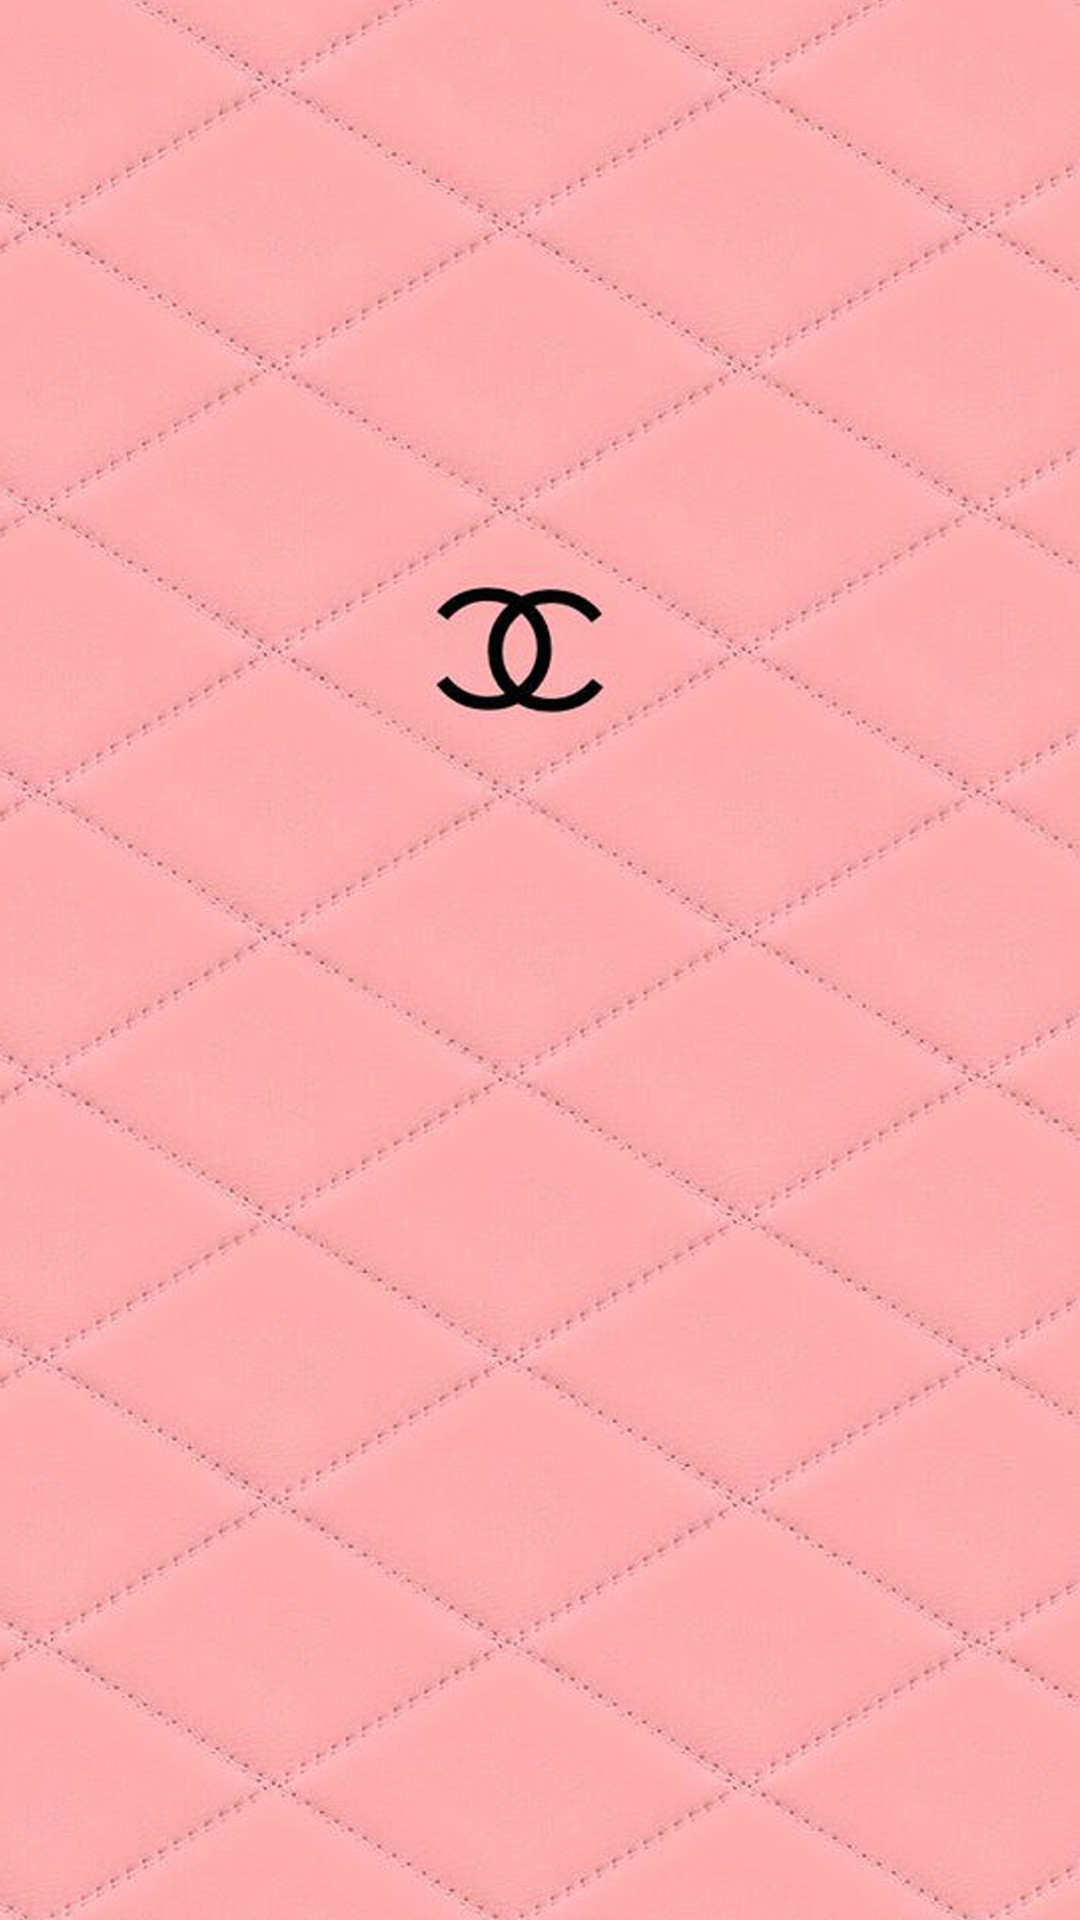 Coco Chanel Iphone Wallpaper 69 Images